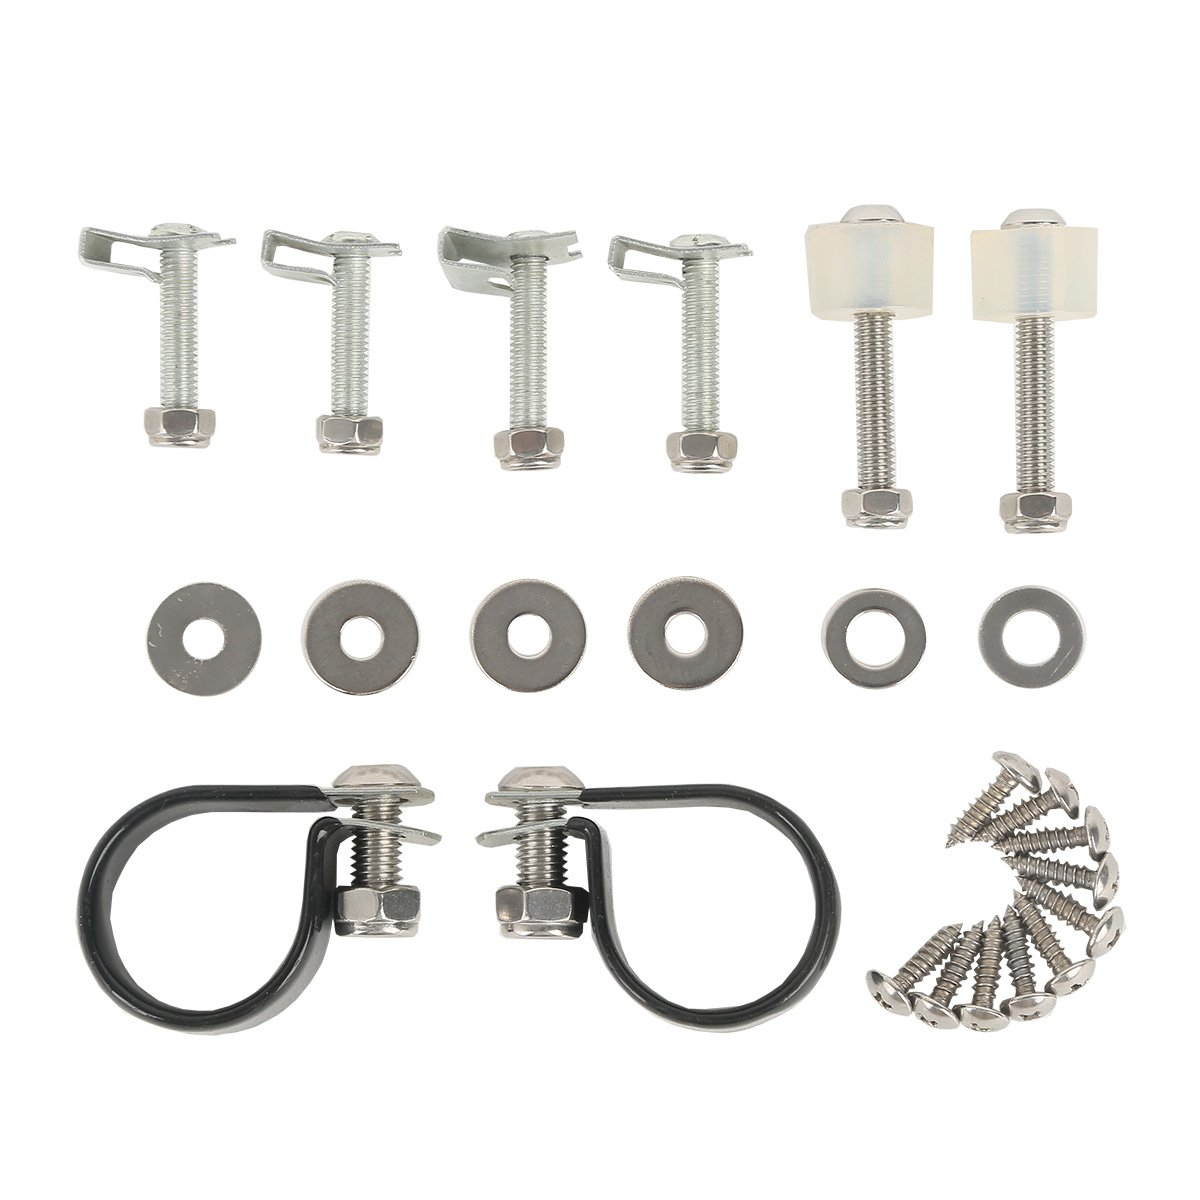 XMT-MOTO For Harley Touring Lower Vented Fairings Mounting hardware Kit Clamps Clips 83